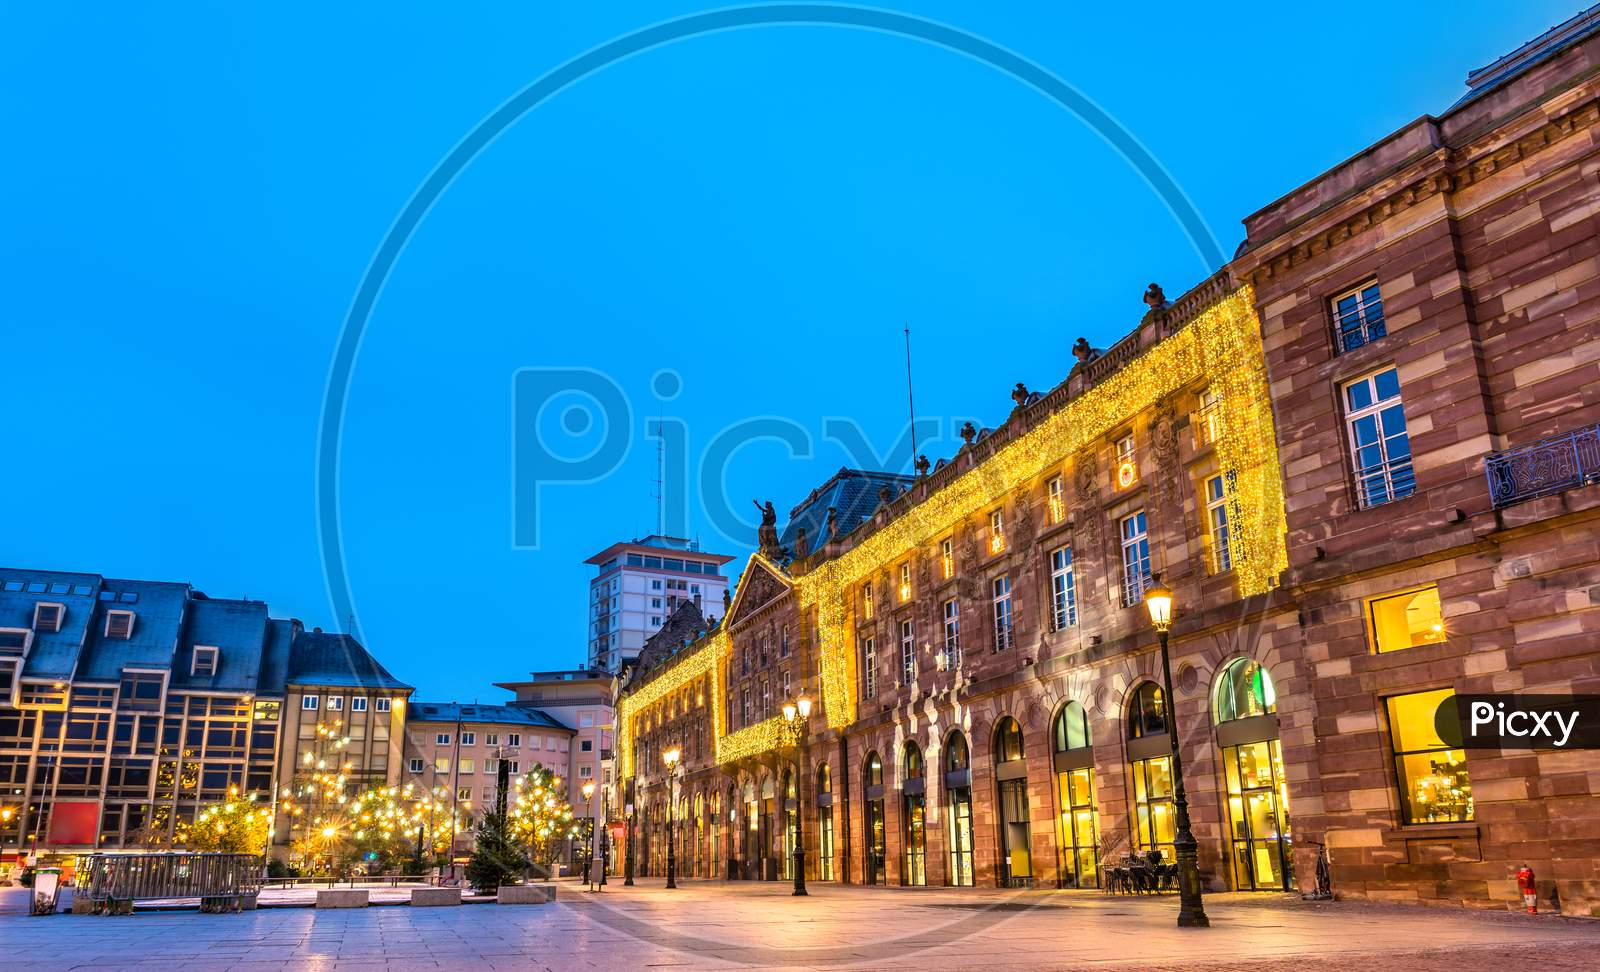 Aubette, A Historical Building In Strasbourg Decorated For Christmas. France